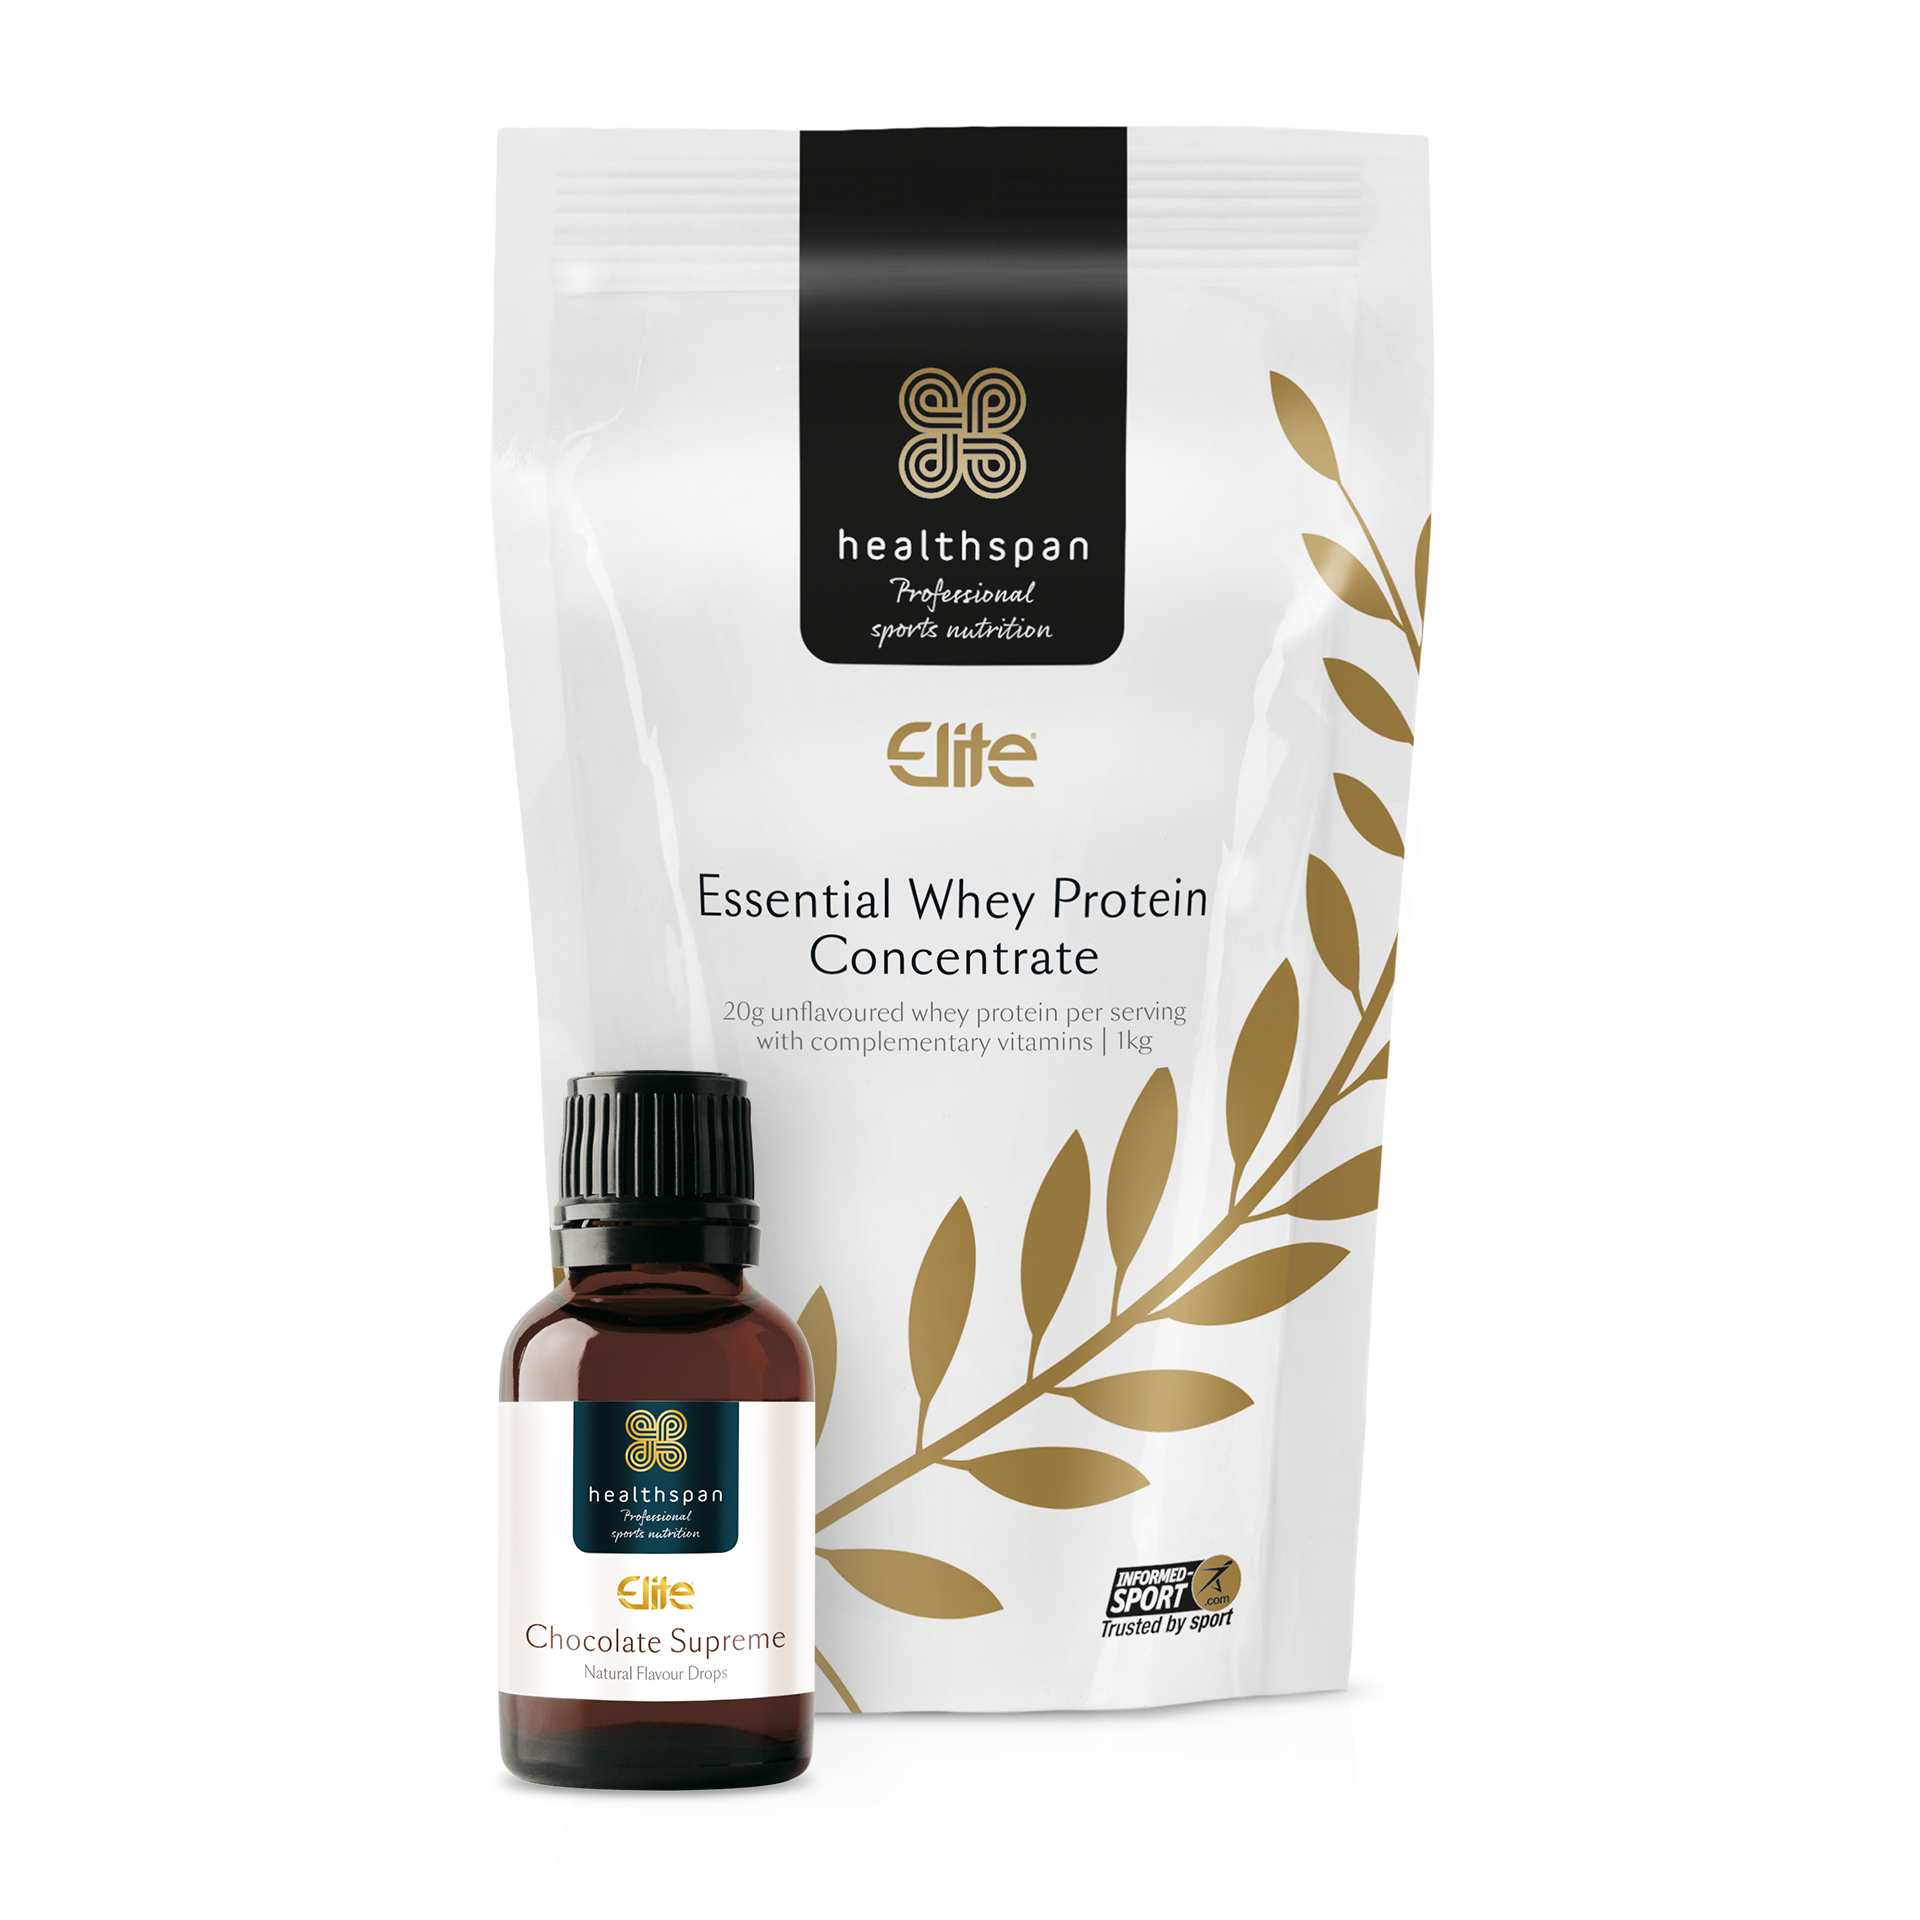 Elite Essential Whey Protein Concentrate 1kg Bag and Chocolate flavour drops